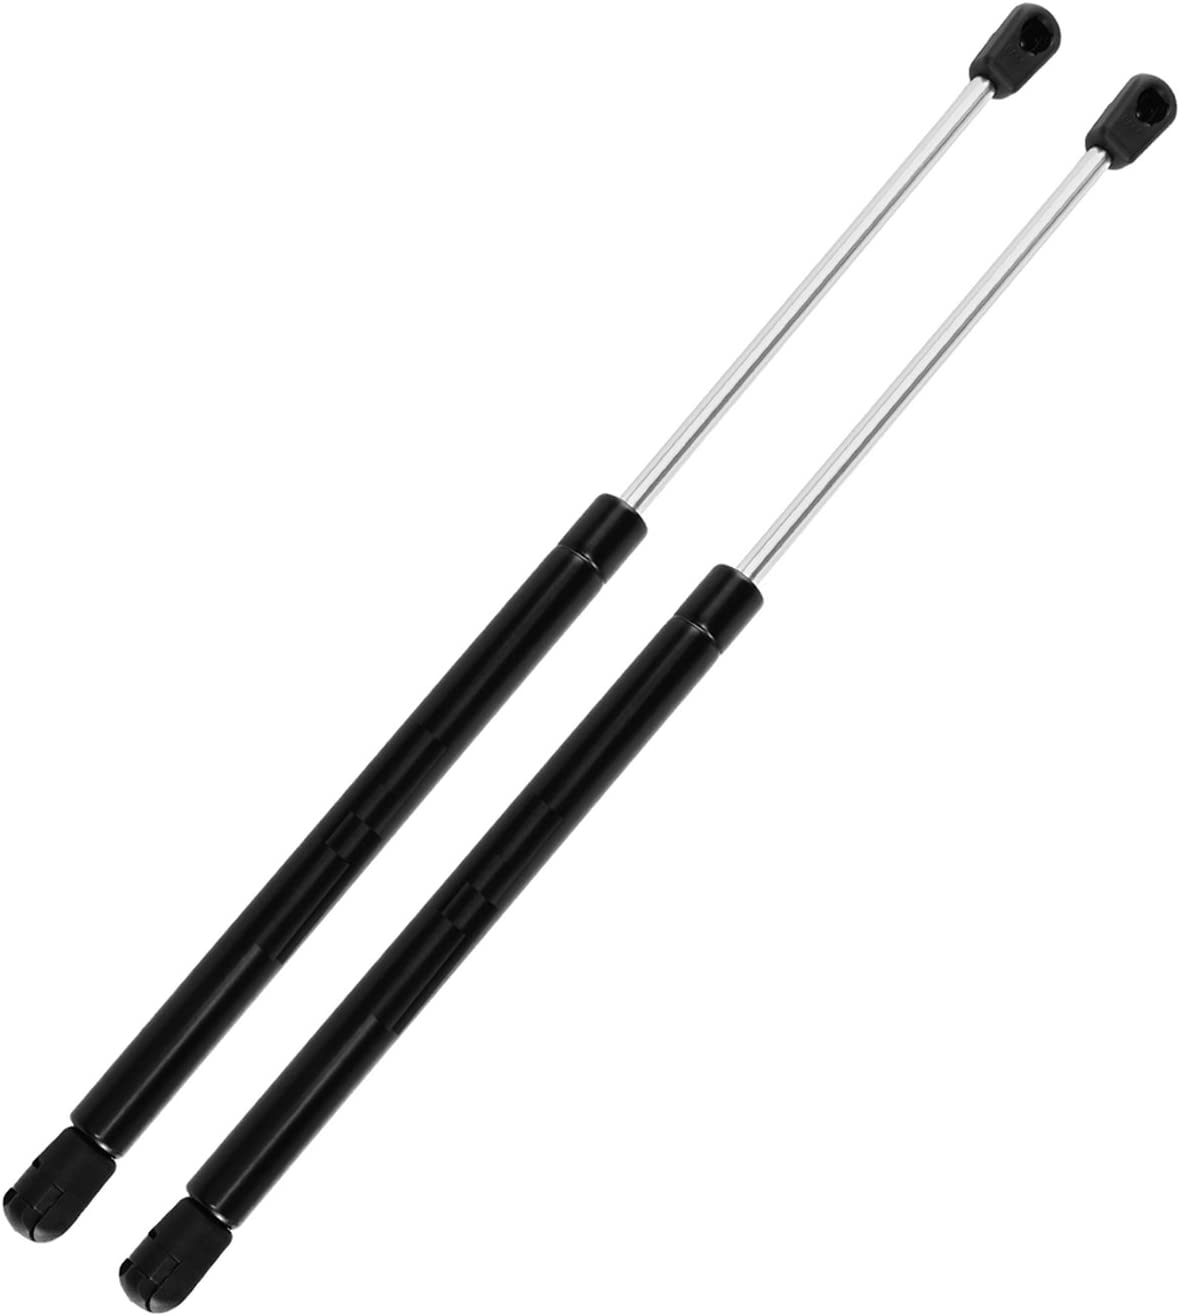 A-Premium Tailgate Rear Hatch Lift Supports Shock Struts for Cadillac Escalade 2007-2013 Chevrolet Suburban 1500 Suburban 2500 Tahoe 2-PC Set